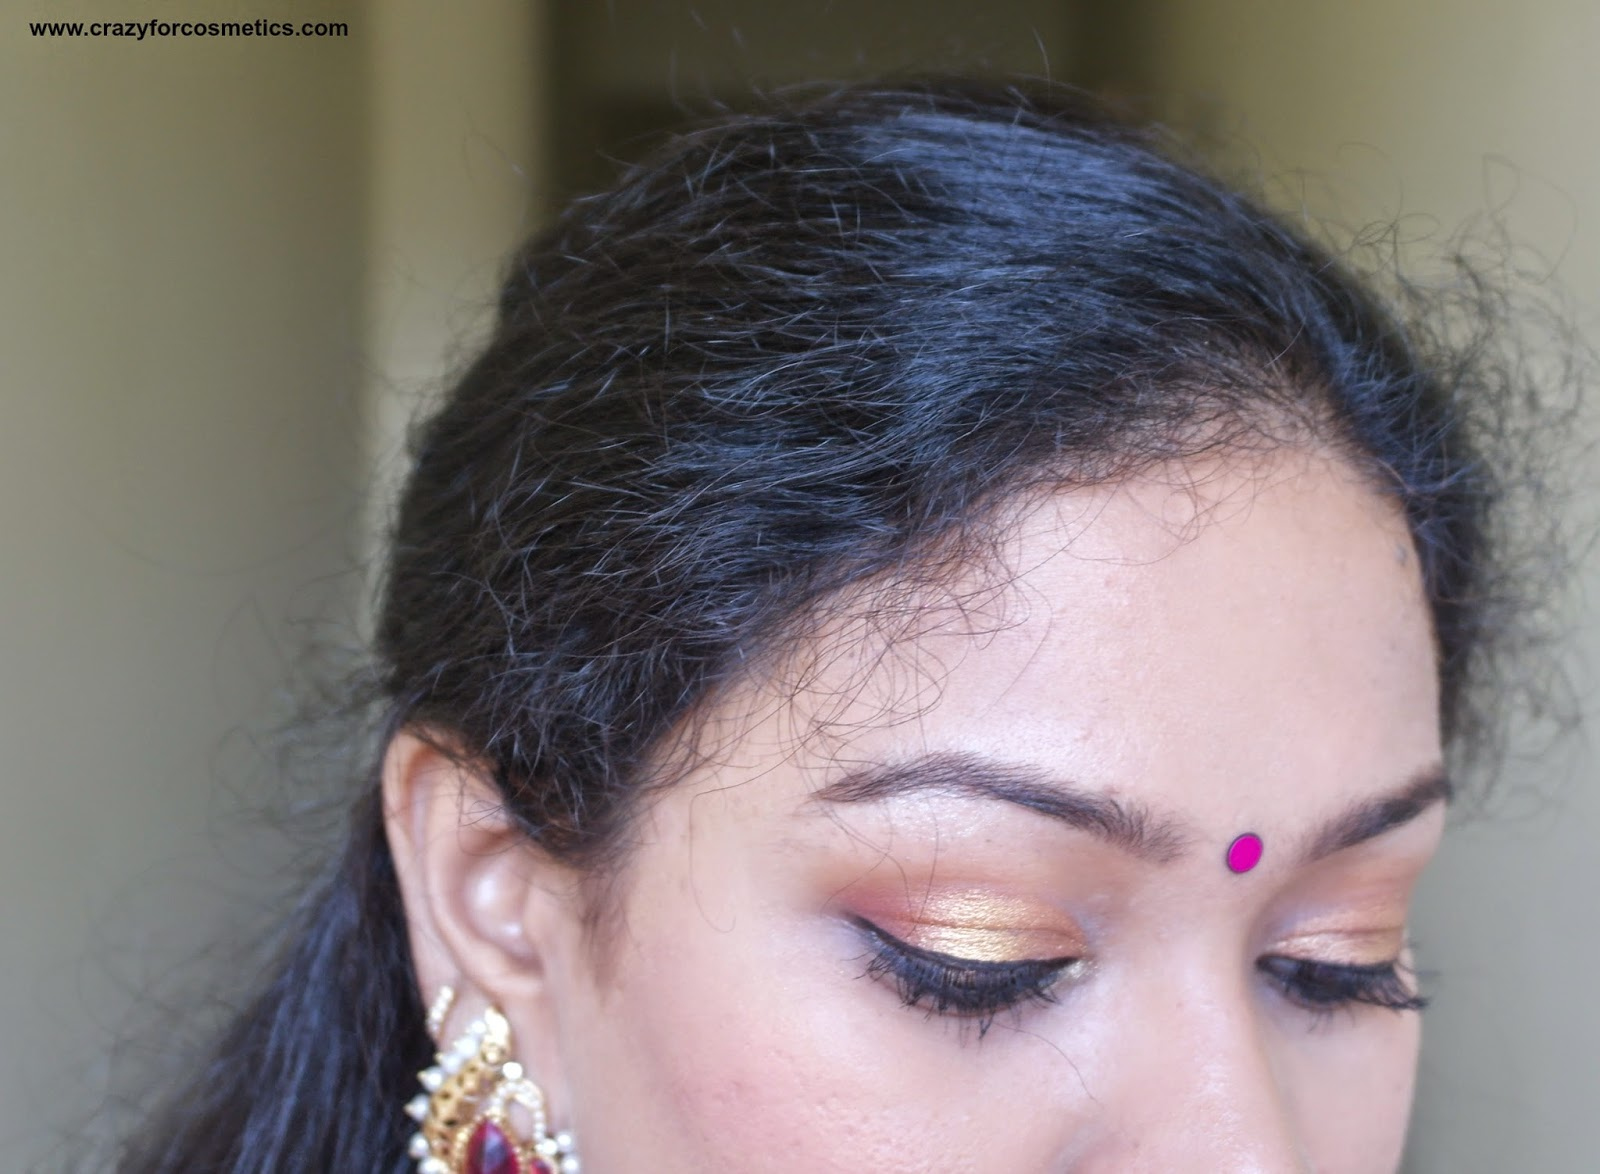 Gold eyeshadow eyemakeup ideas for weddings for Indian skin